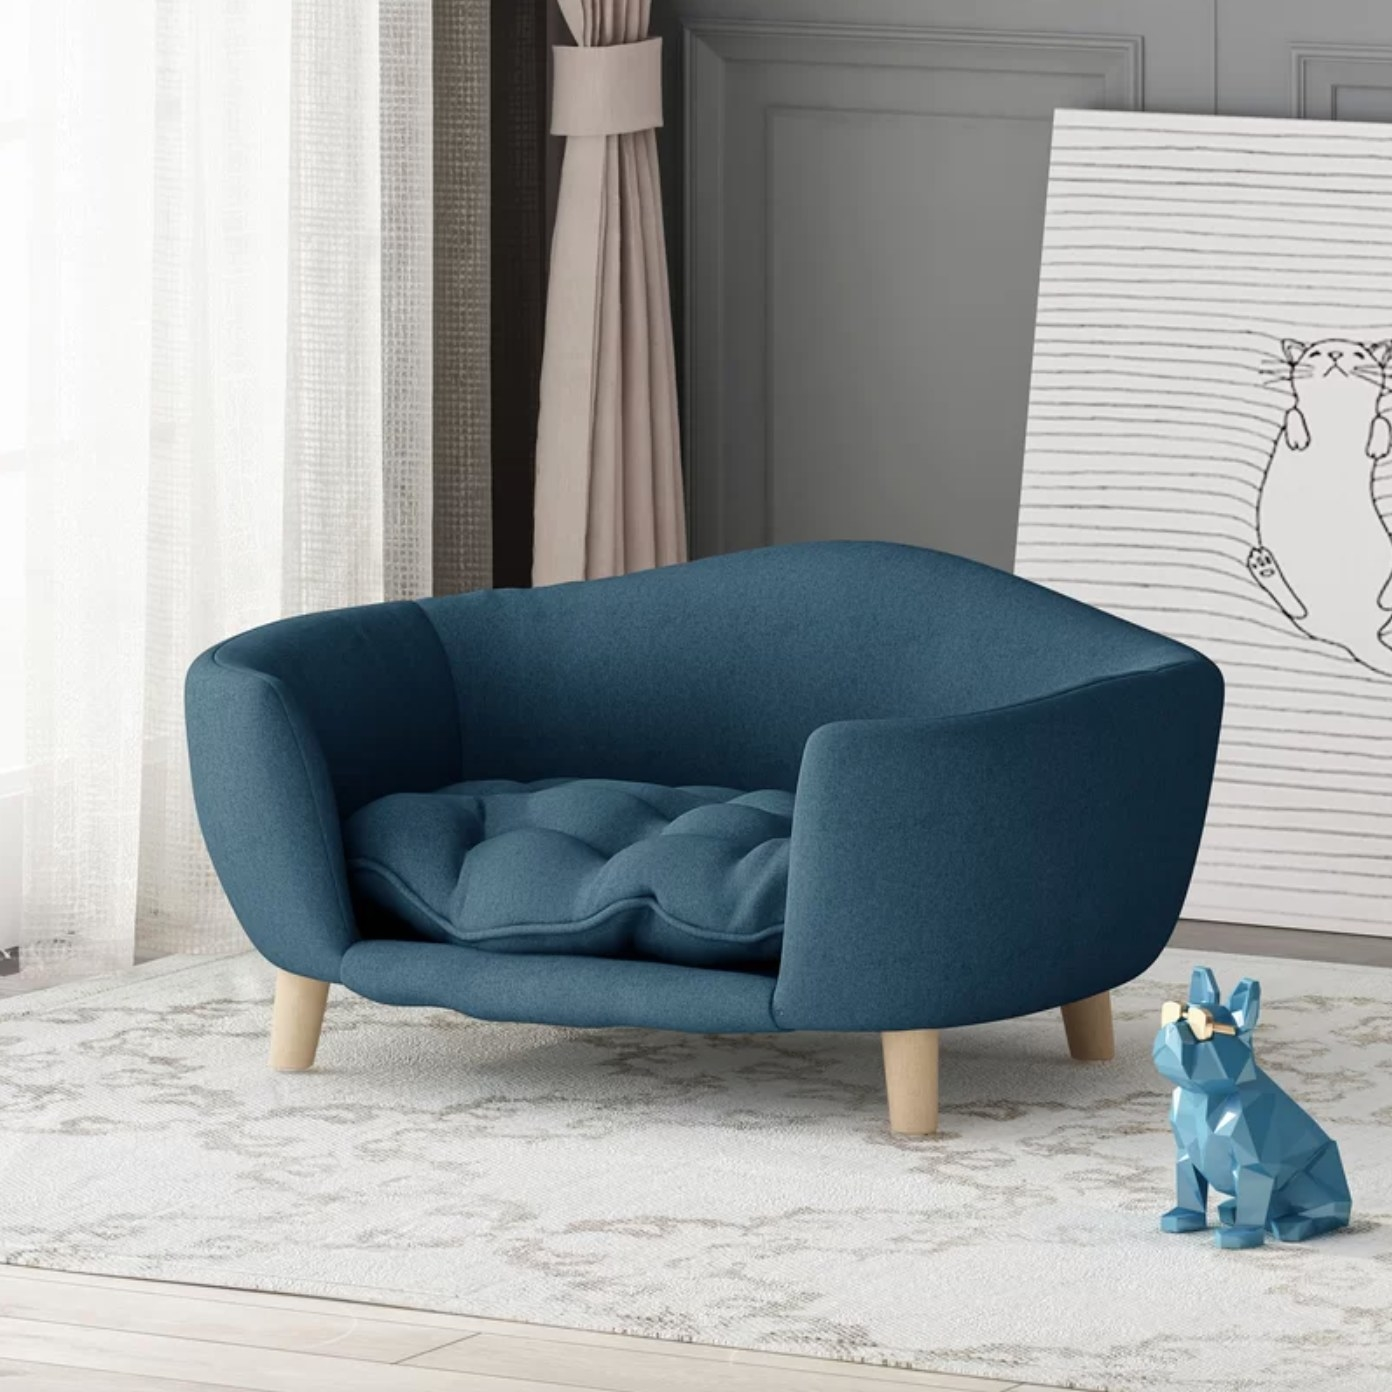 The luxury pet bed in navy blue